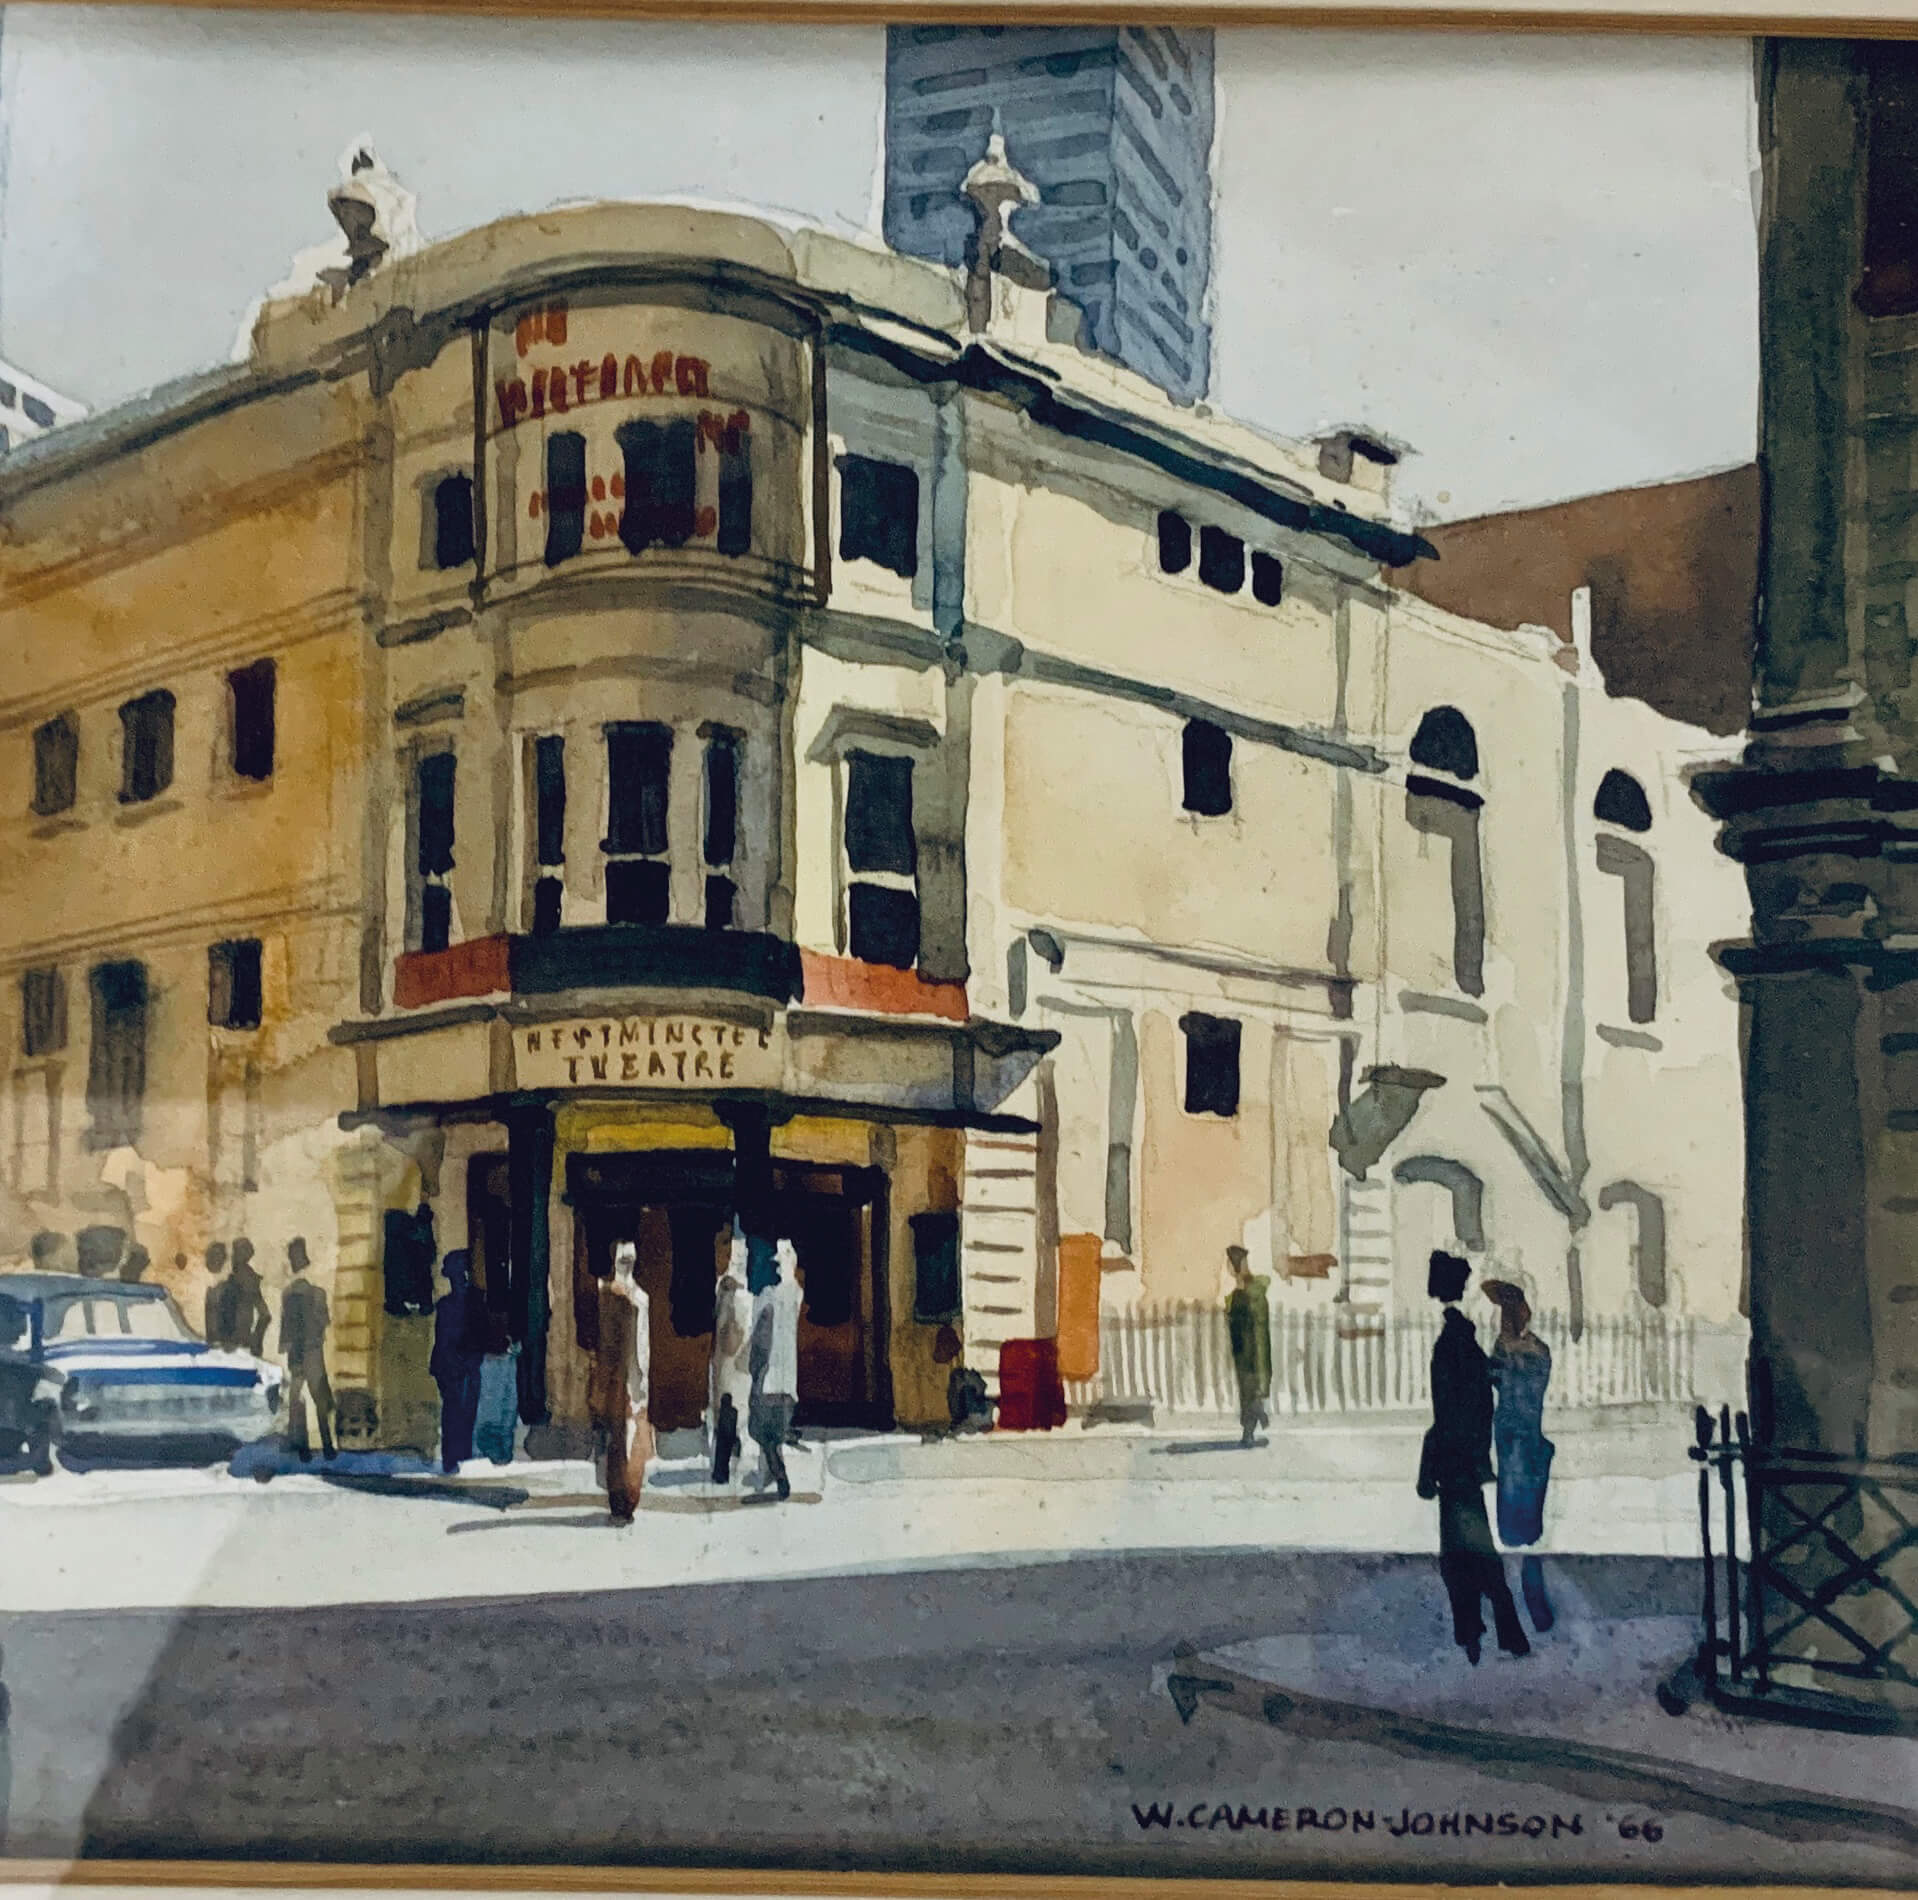 A picture of the Westminster Theatre by Bill Cameron-Johnson